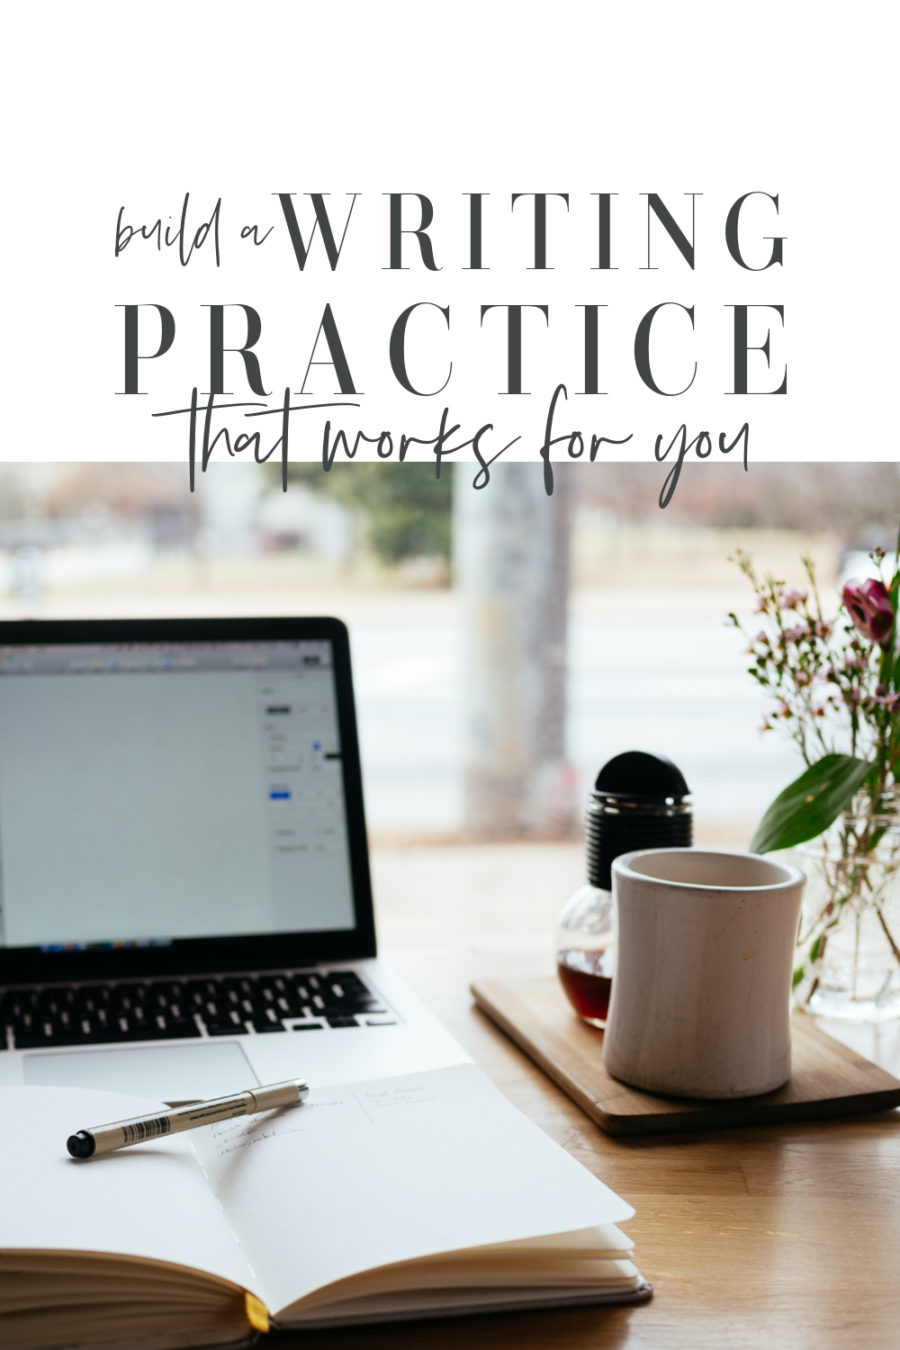 Building a Writing Practice that Works for You